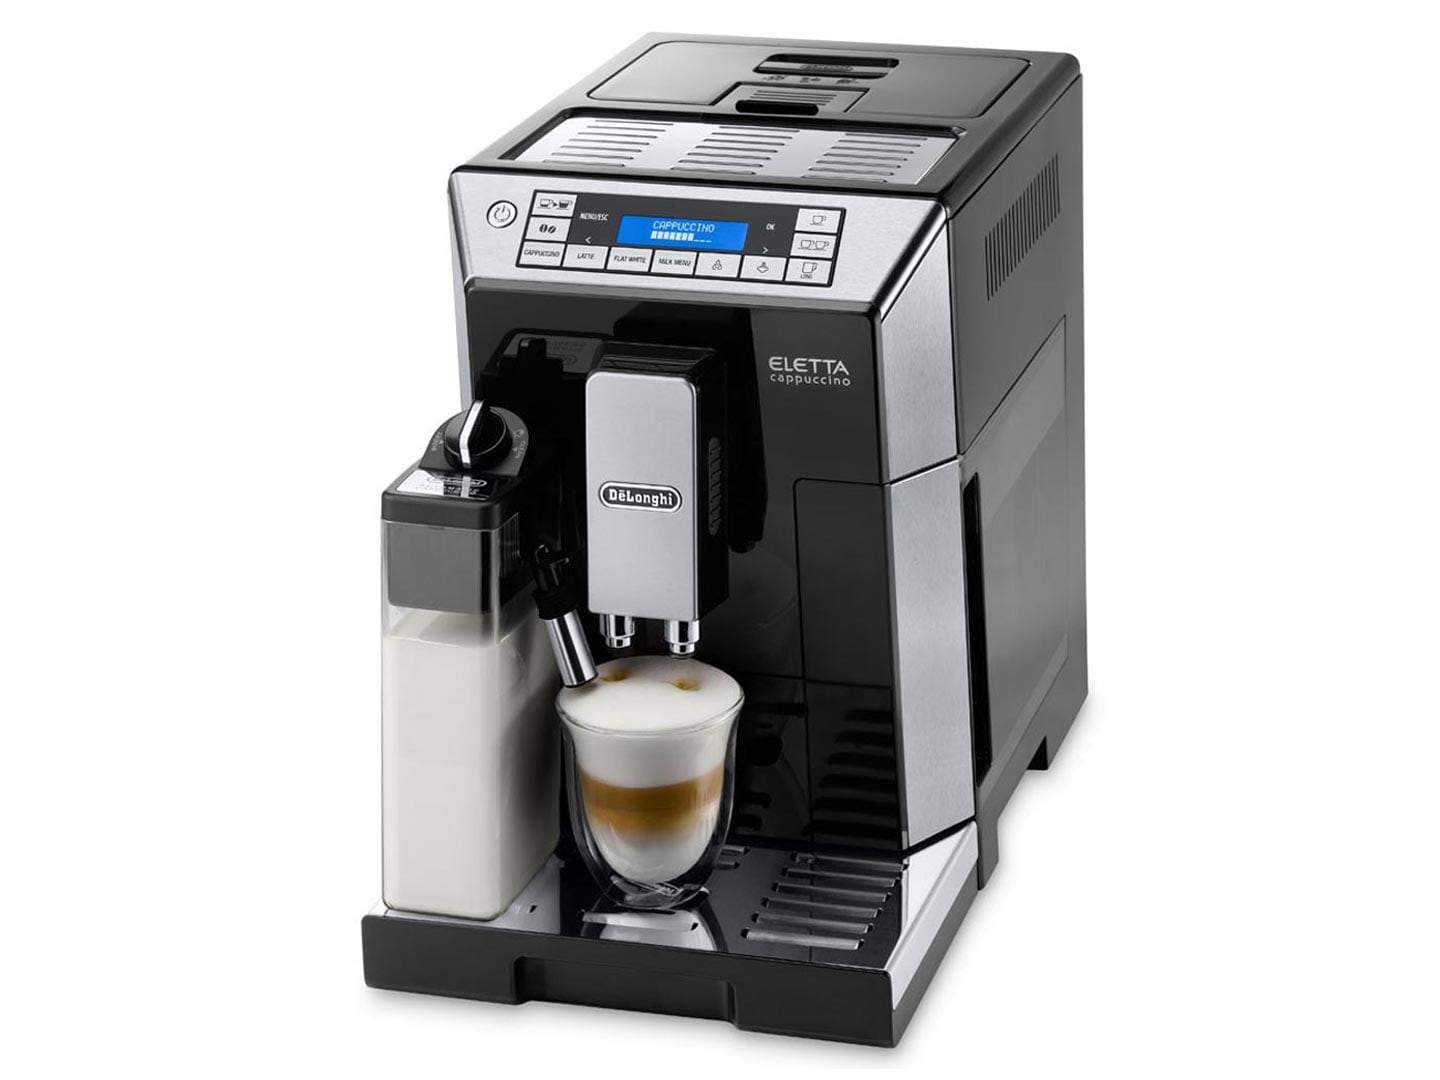 Electronic De Longi Coffee Machines fully automatic coffee machines makers delonghi australia eletta cappuccino ecam 45 760 b